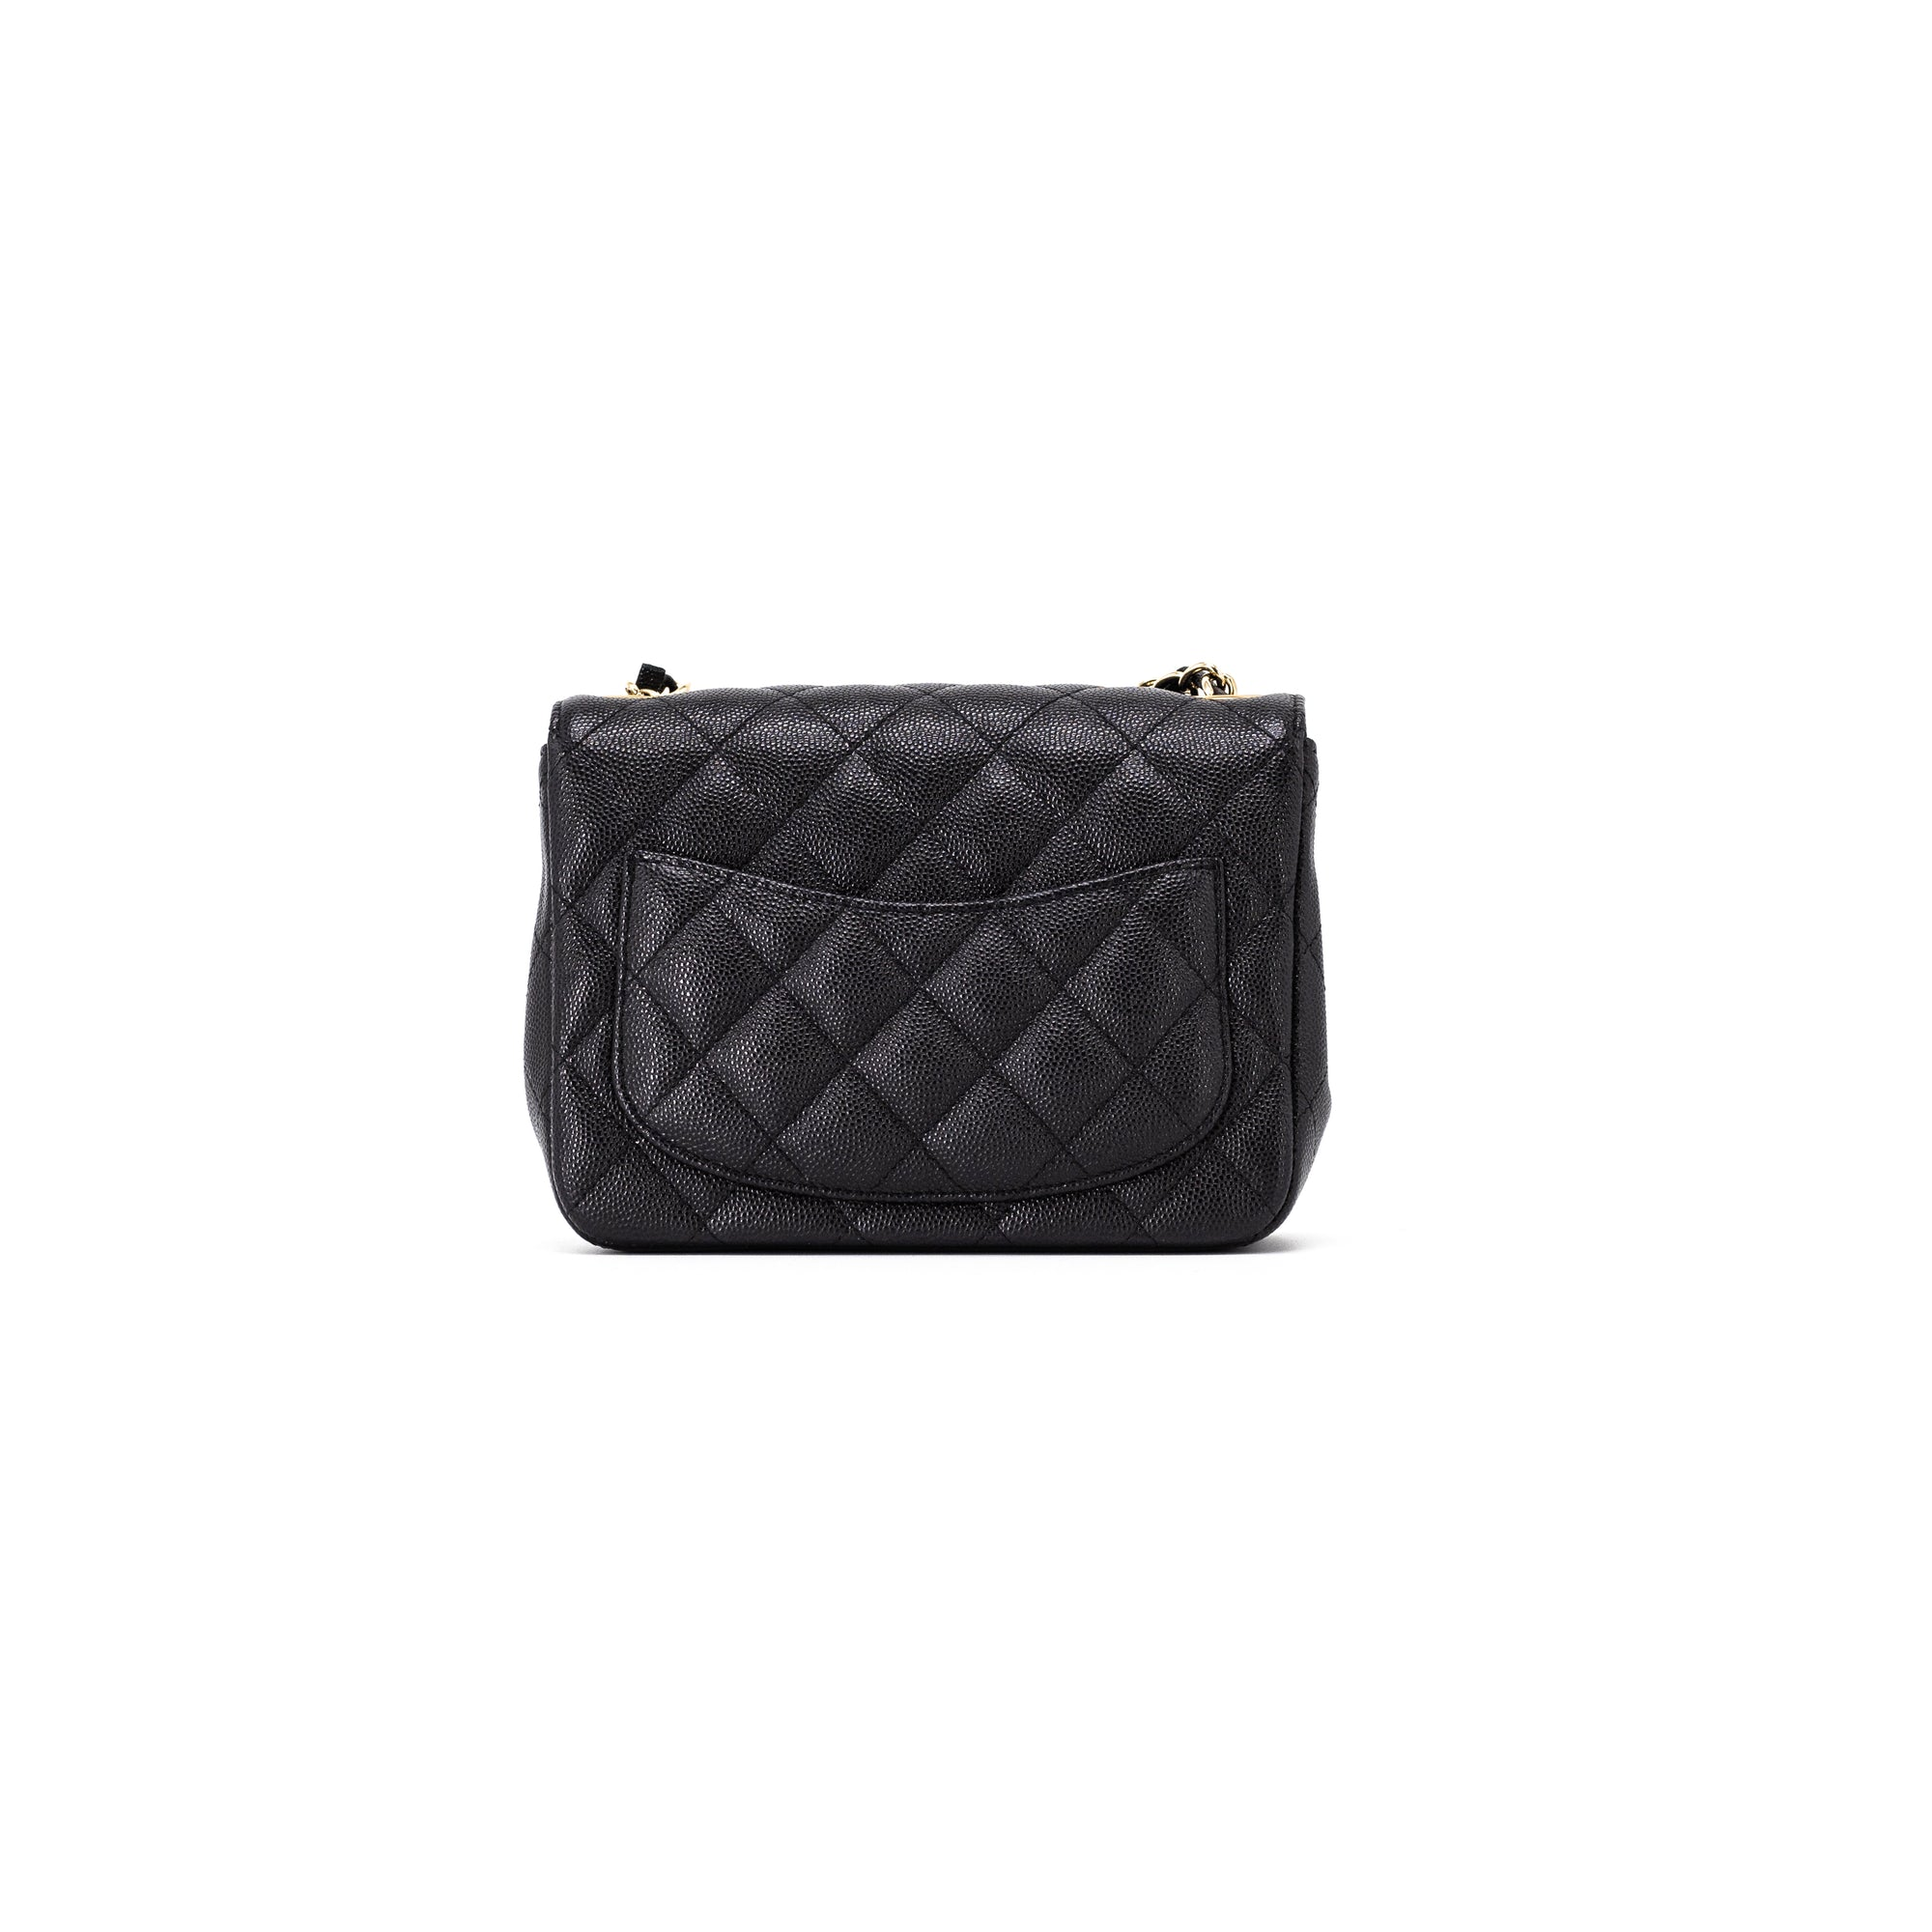 c2aaa5cdabe1 Chanel Quilted Black Caviar Square Mini - THE PURSE AFFAIR